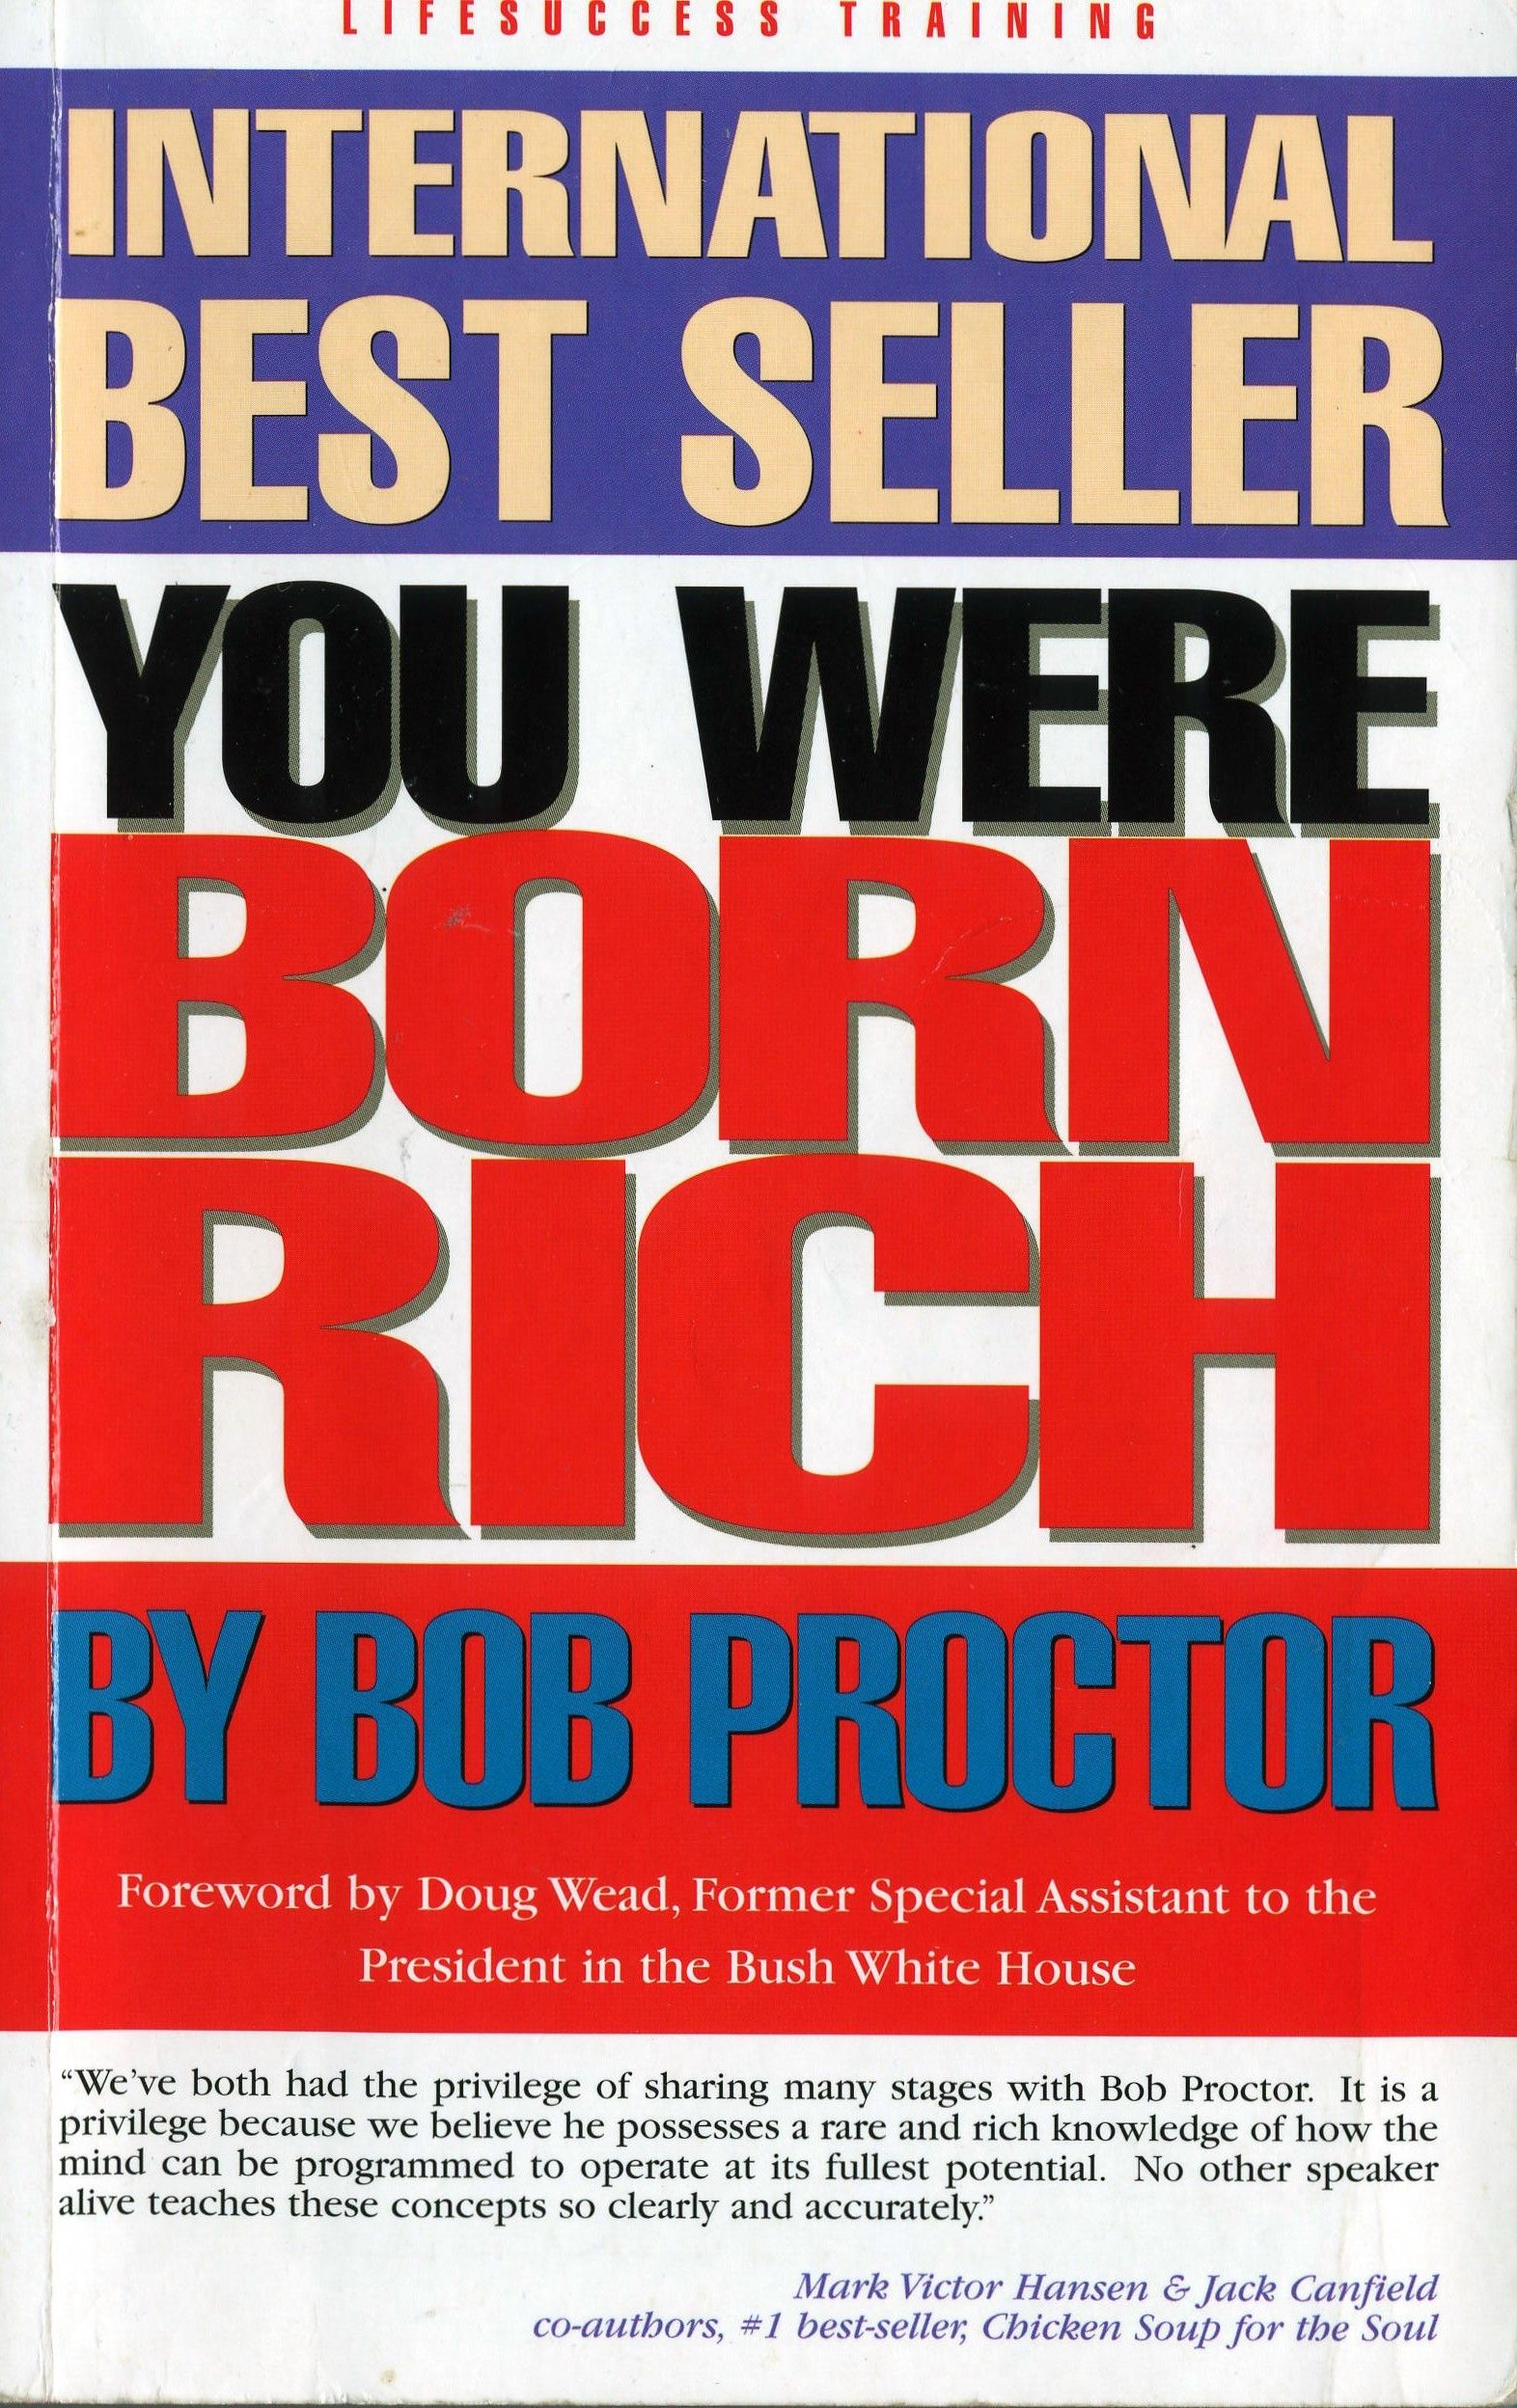 You were born rich bob proctor read our review httpwww the keys to maximizing the awesome potential you were born with are you ready to cash in on the riches inside of you fandeluxe Gallery